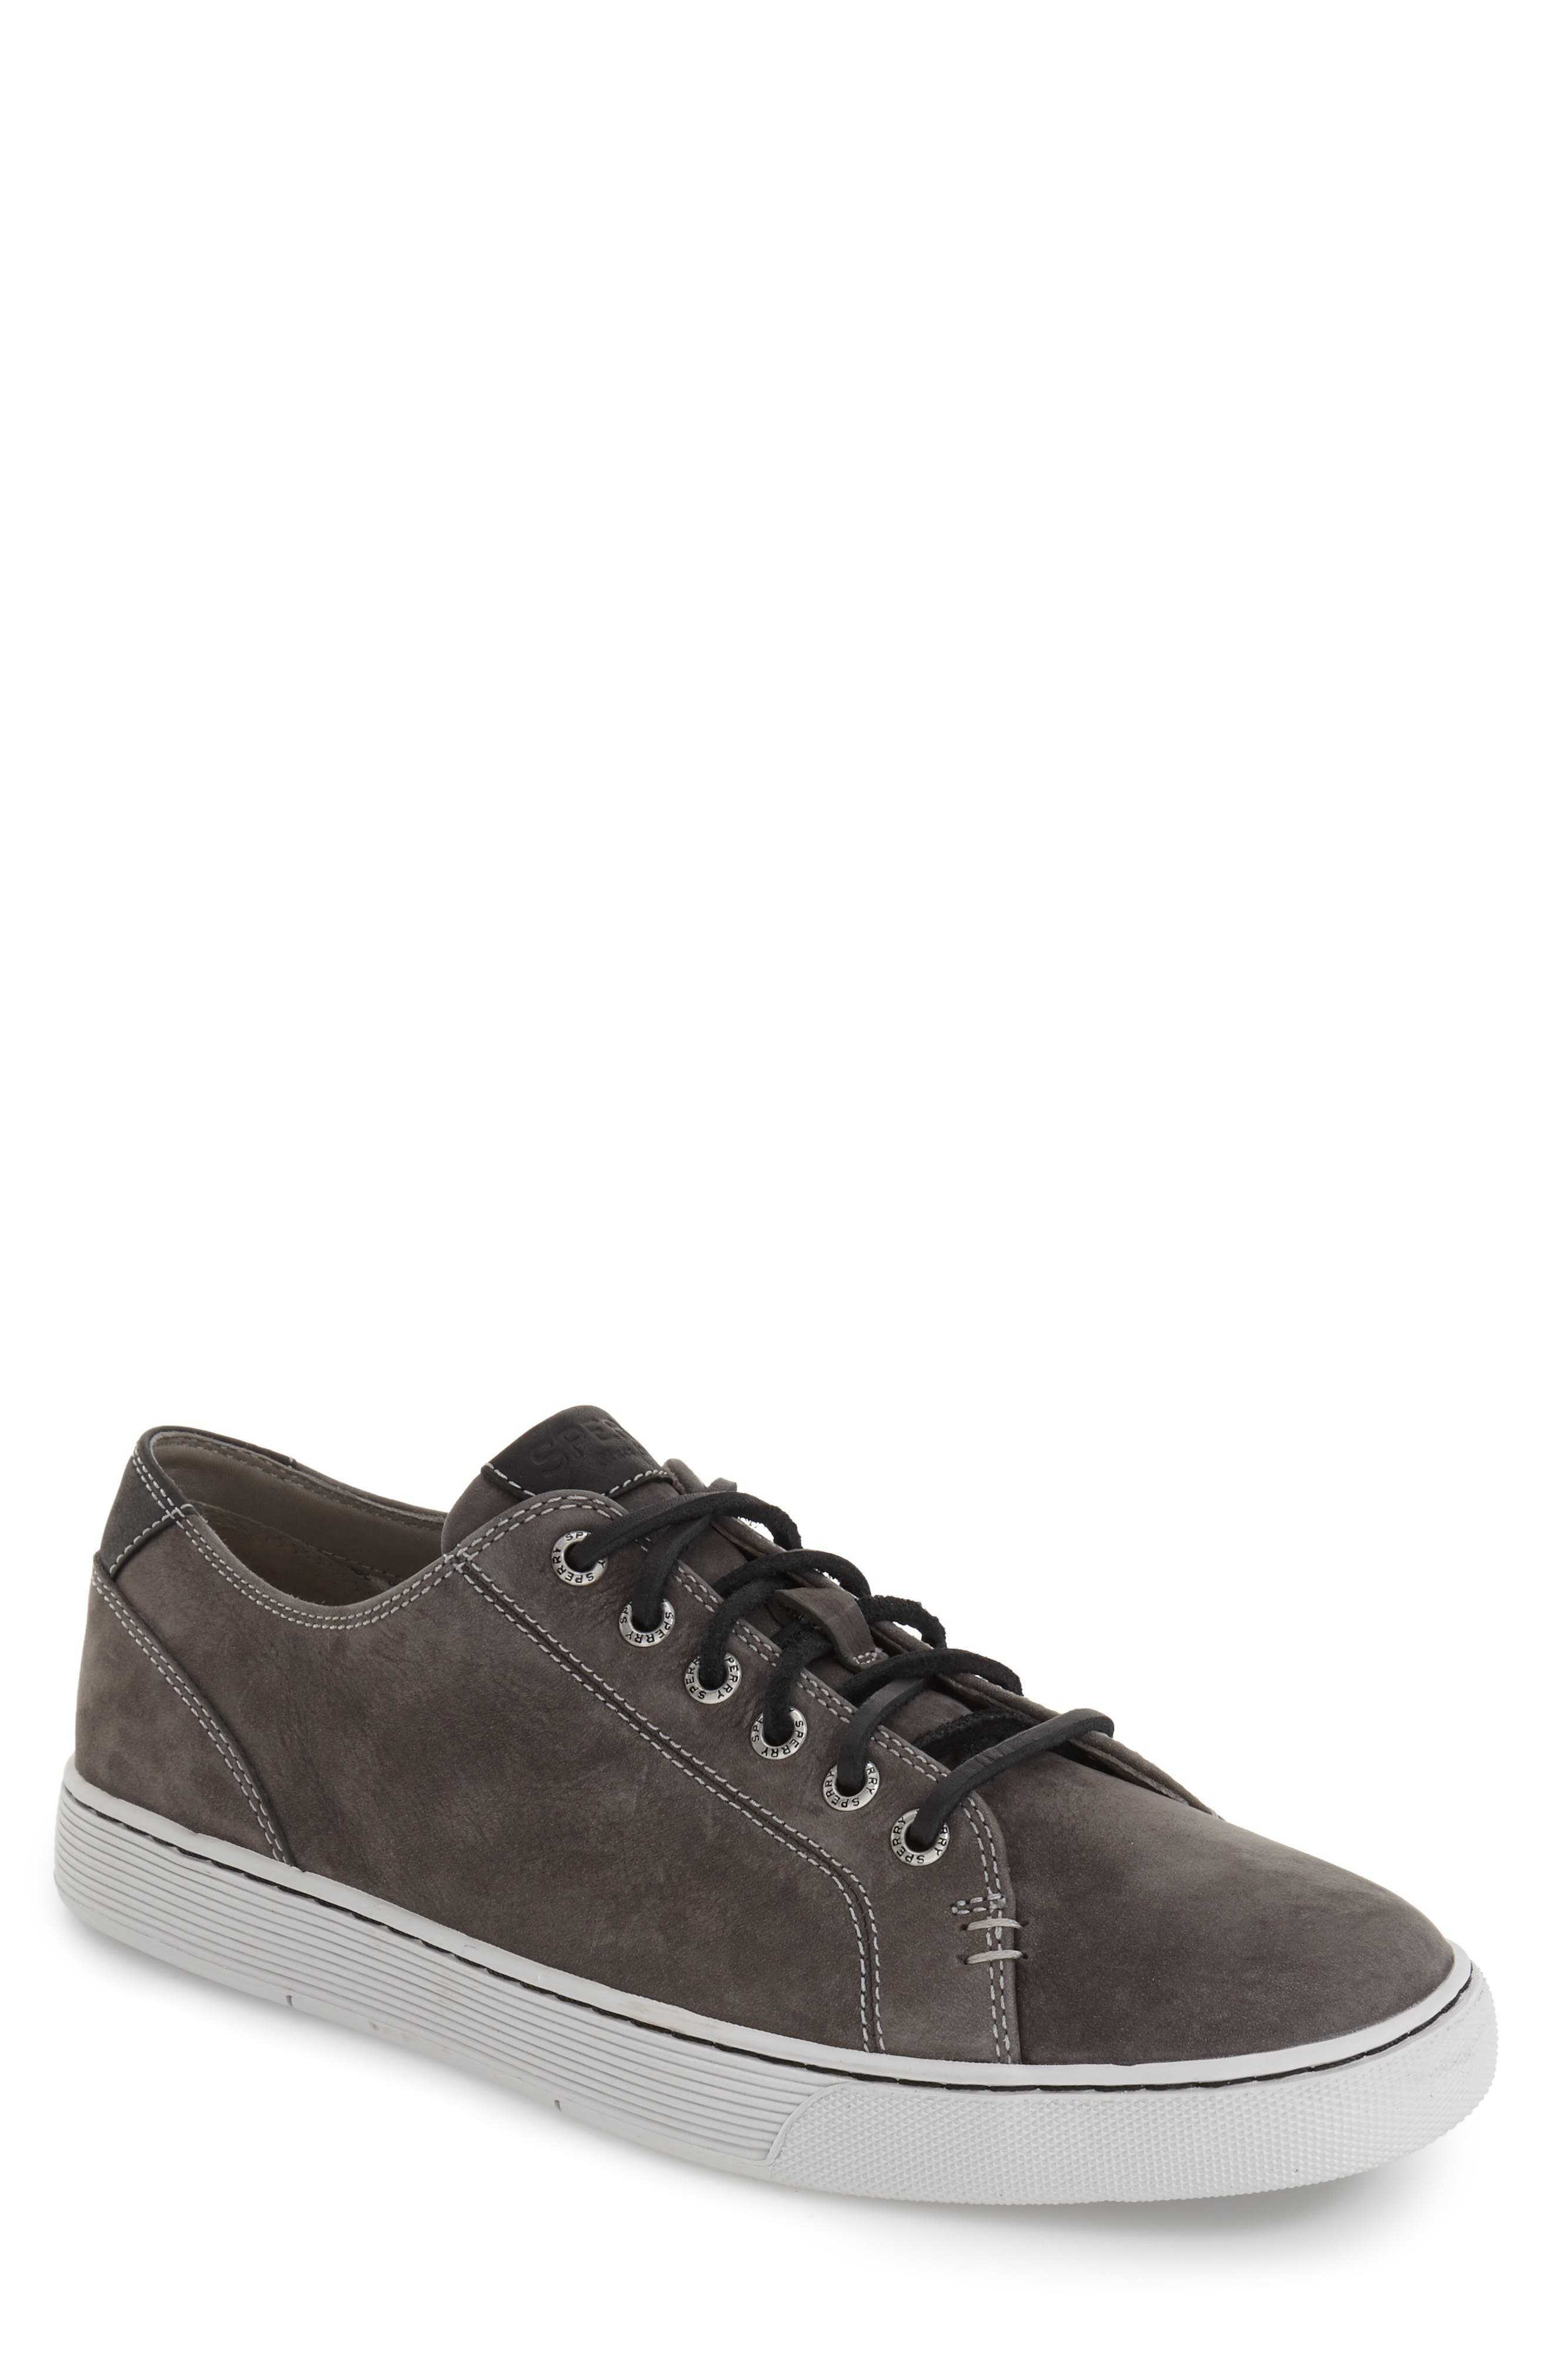 Gold Cup LLT Sneaker,                             Alternate thumbnail 2, color,                             GREY SUEDE